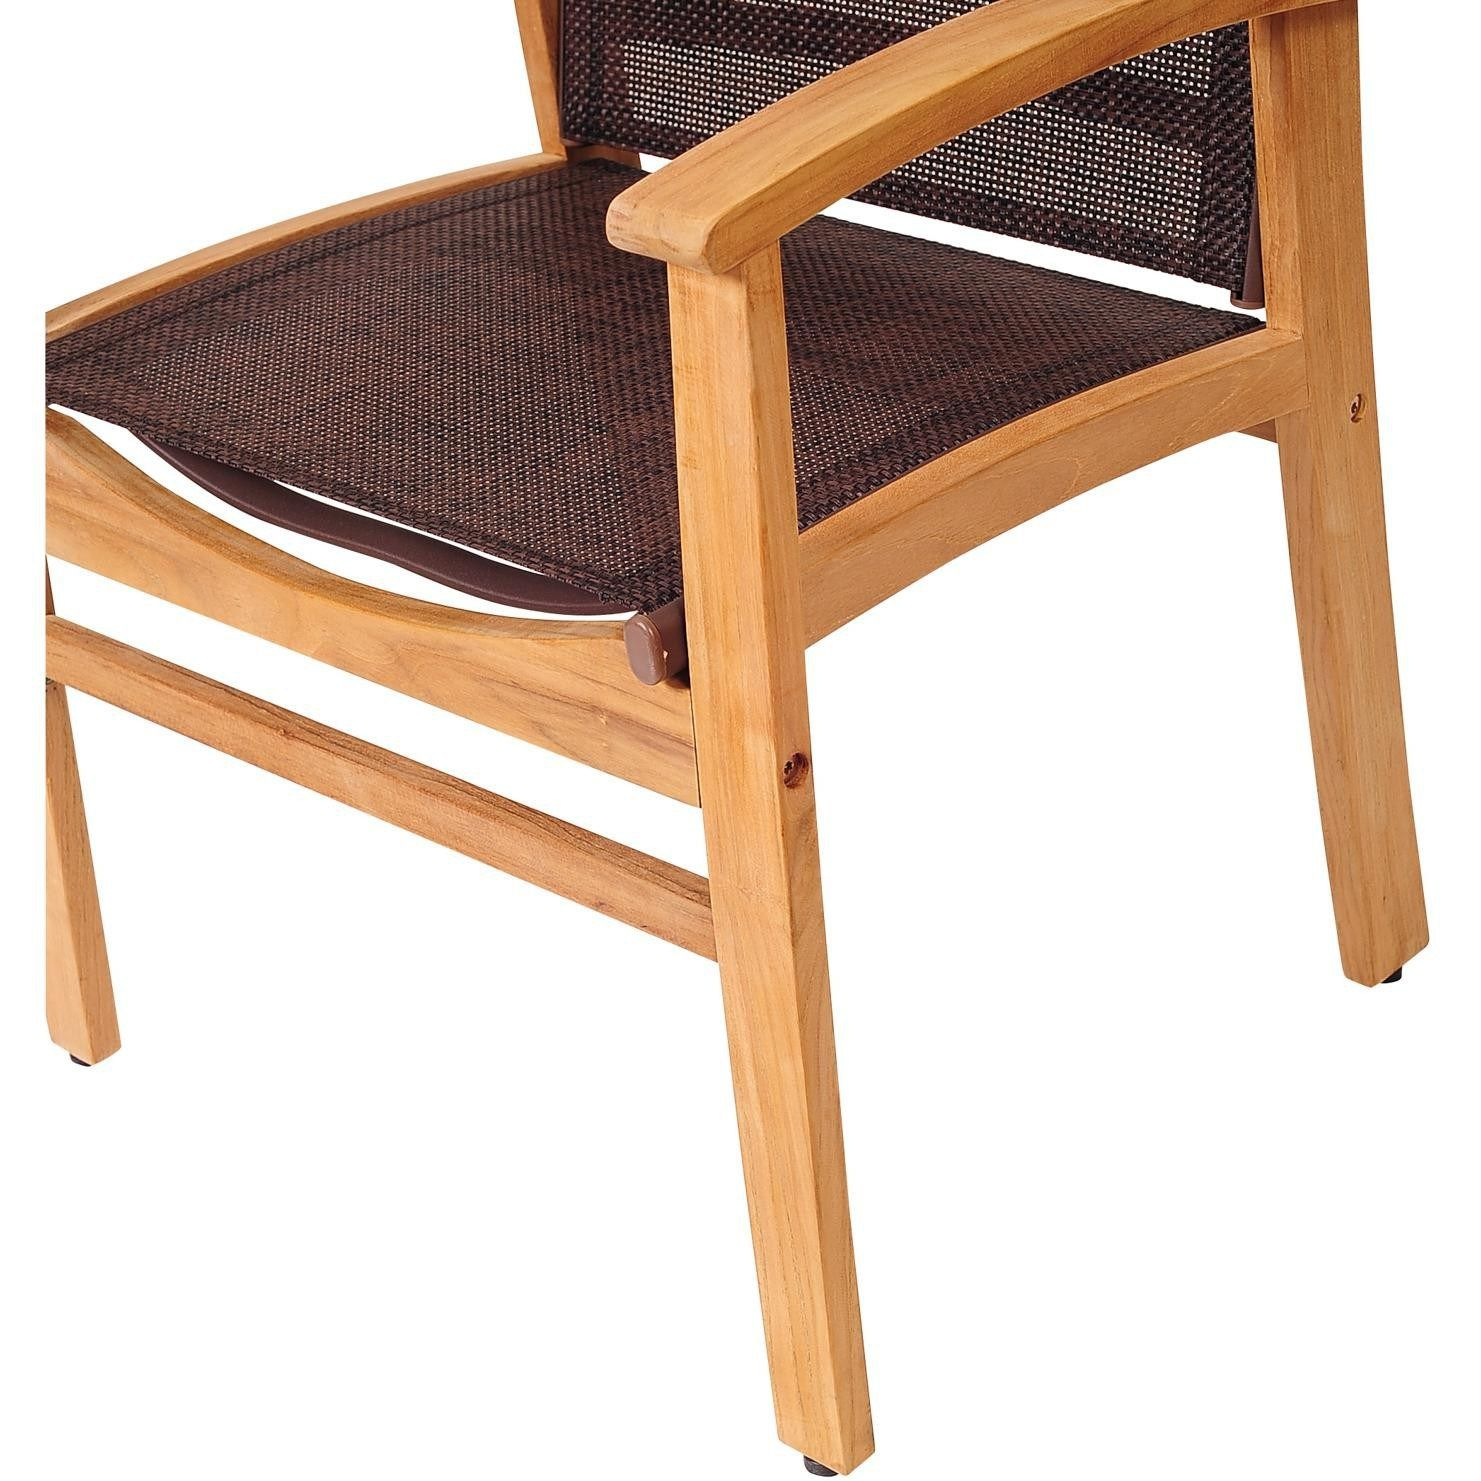 New Teak Chair Replacement Parts